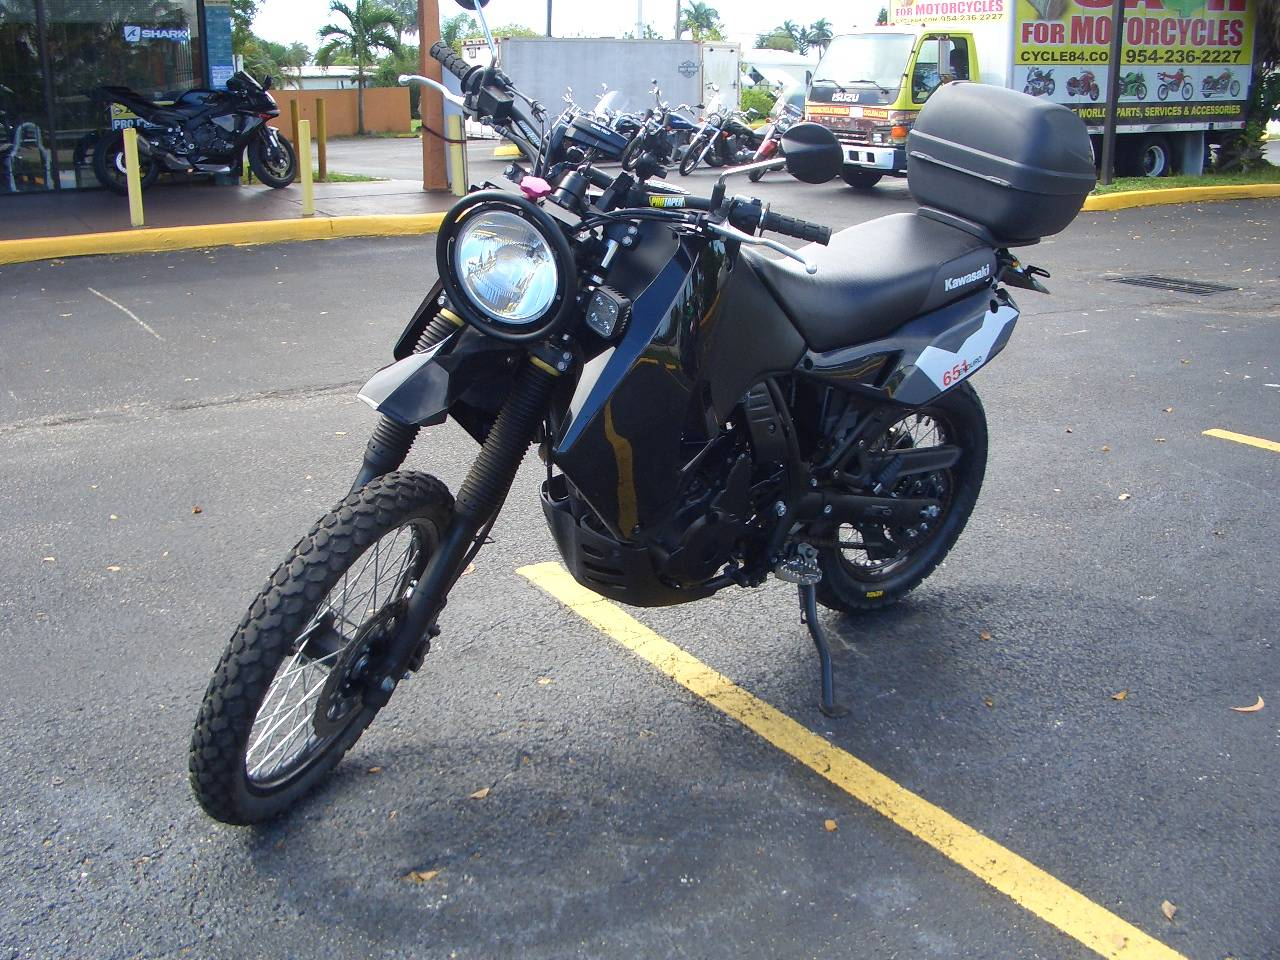 2018 Kawasaki KLR 650 in Fort Lauderdale, Florida - Photo 2